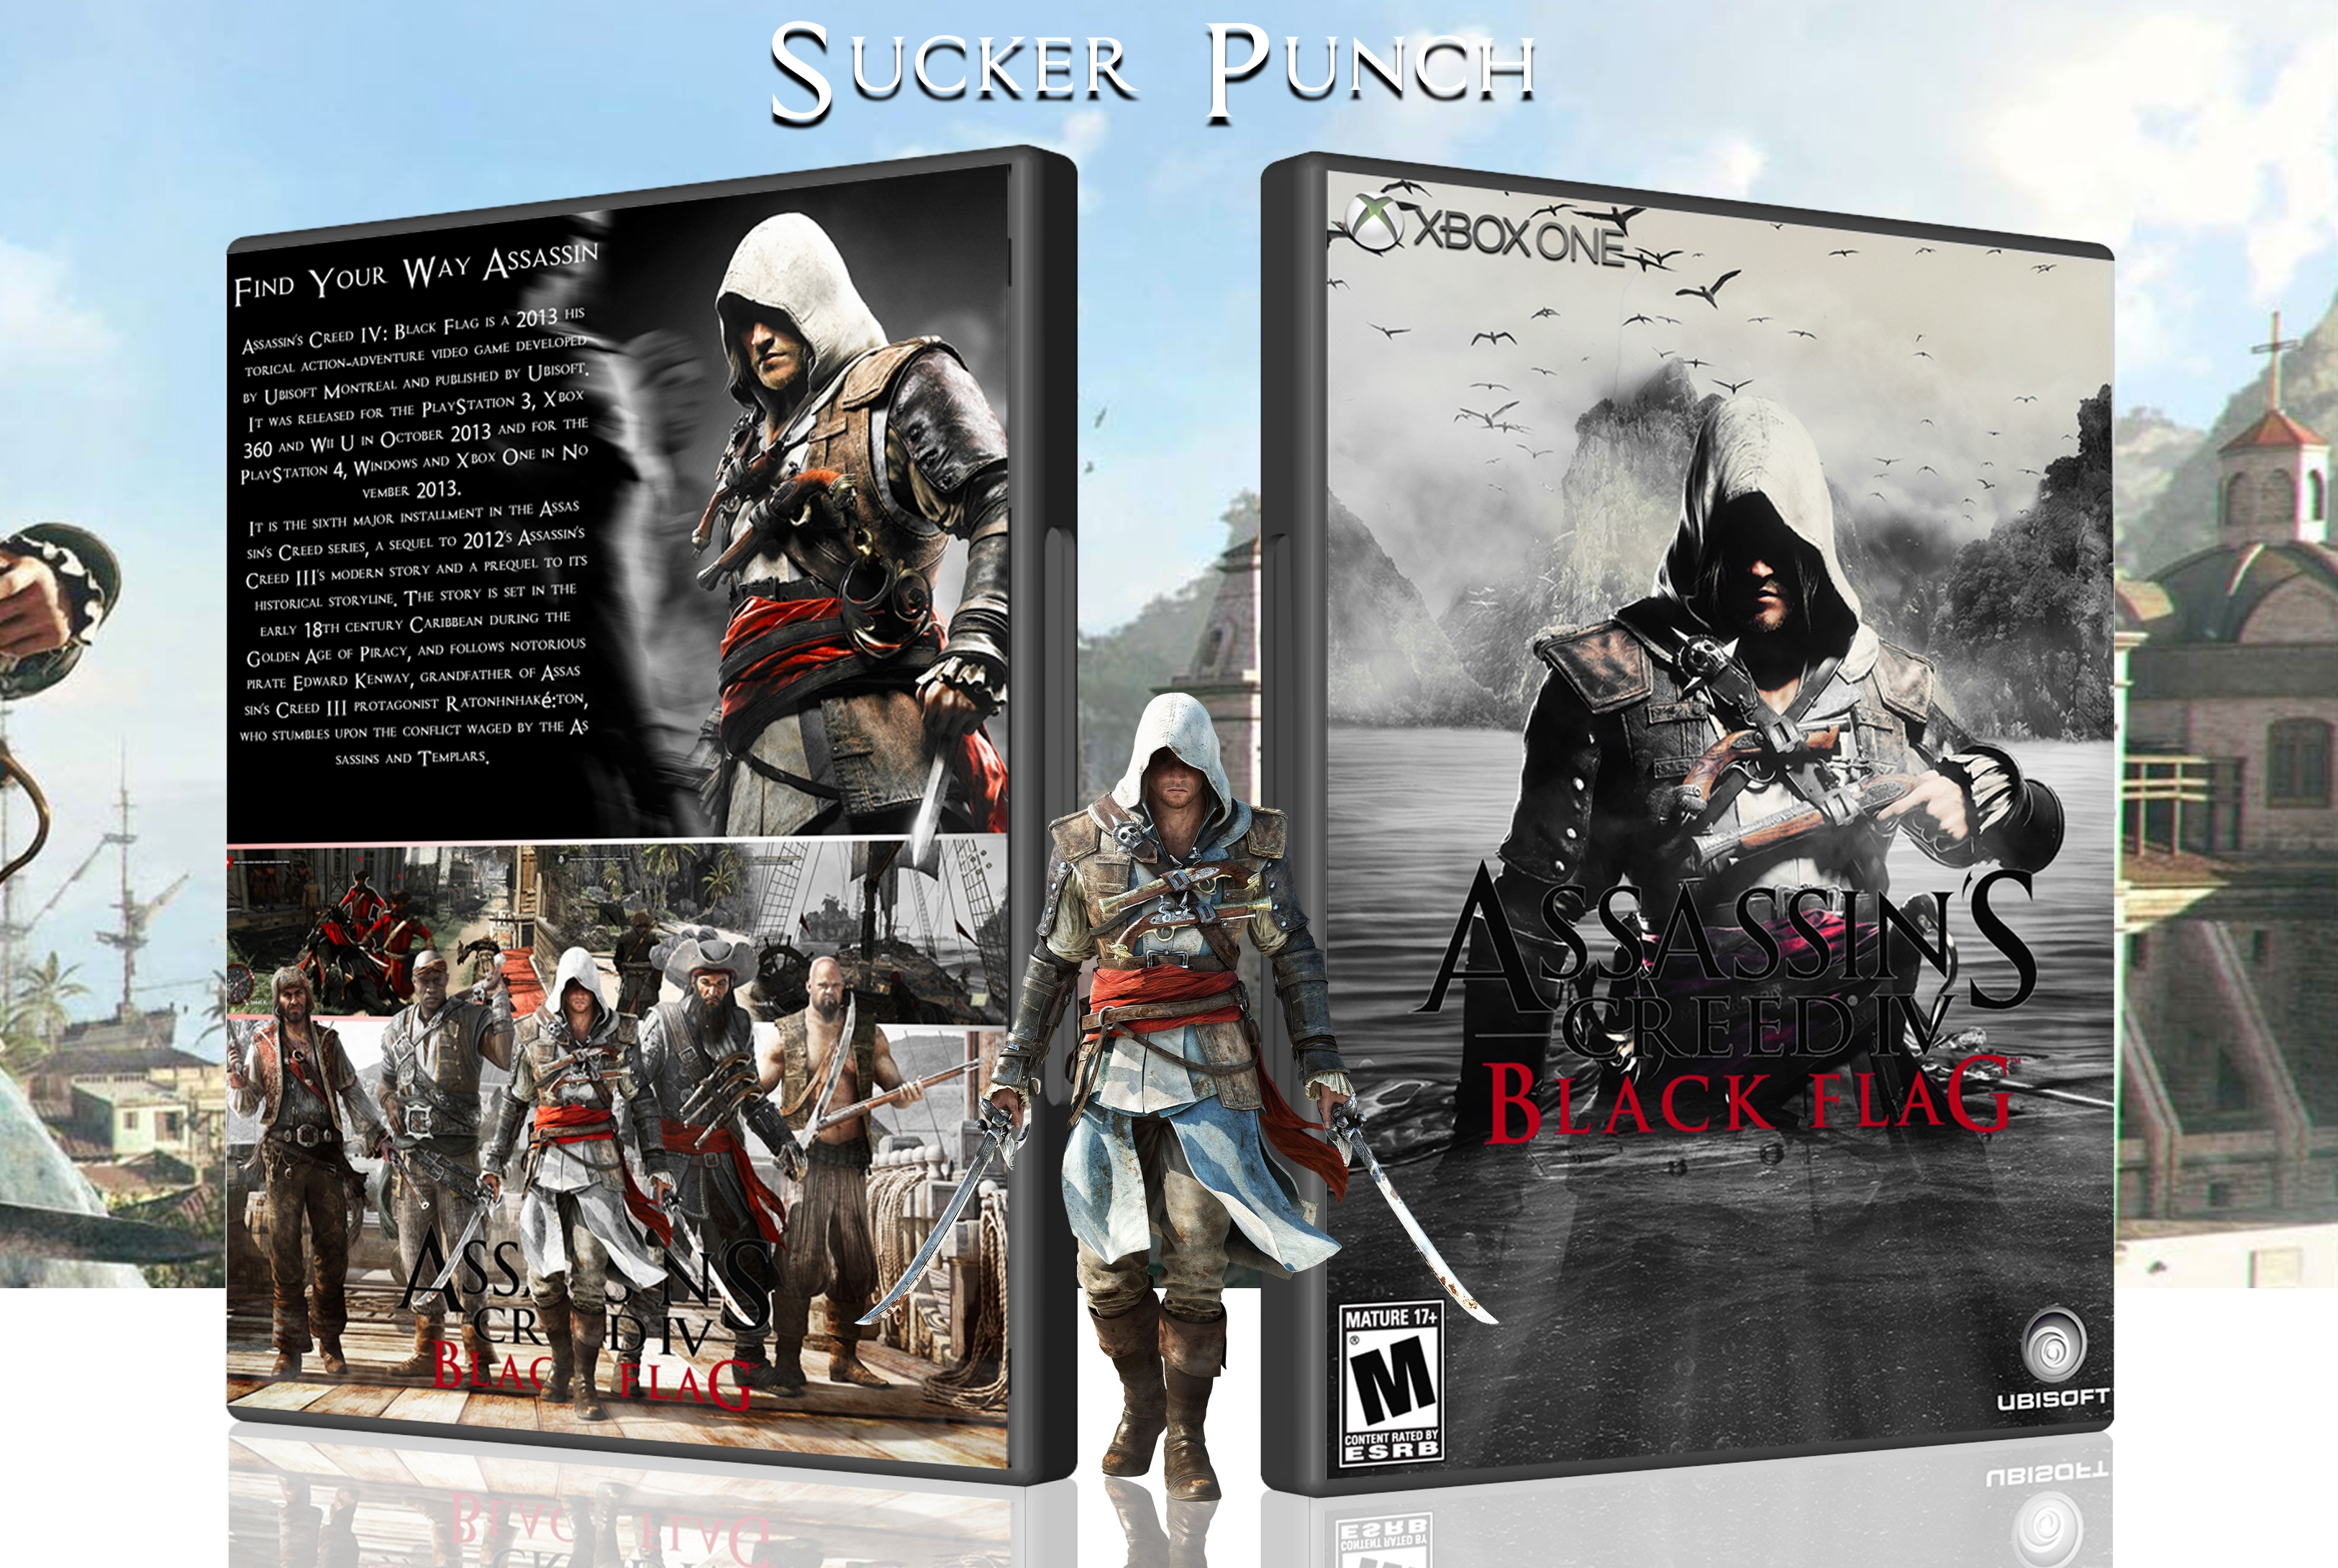 Assassin's Creed IV Black Flag box cover